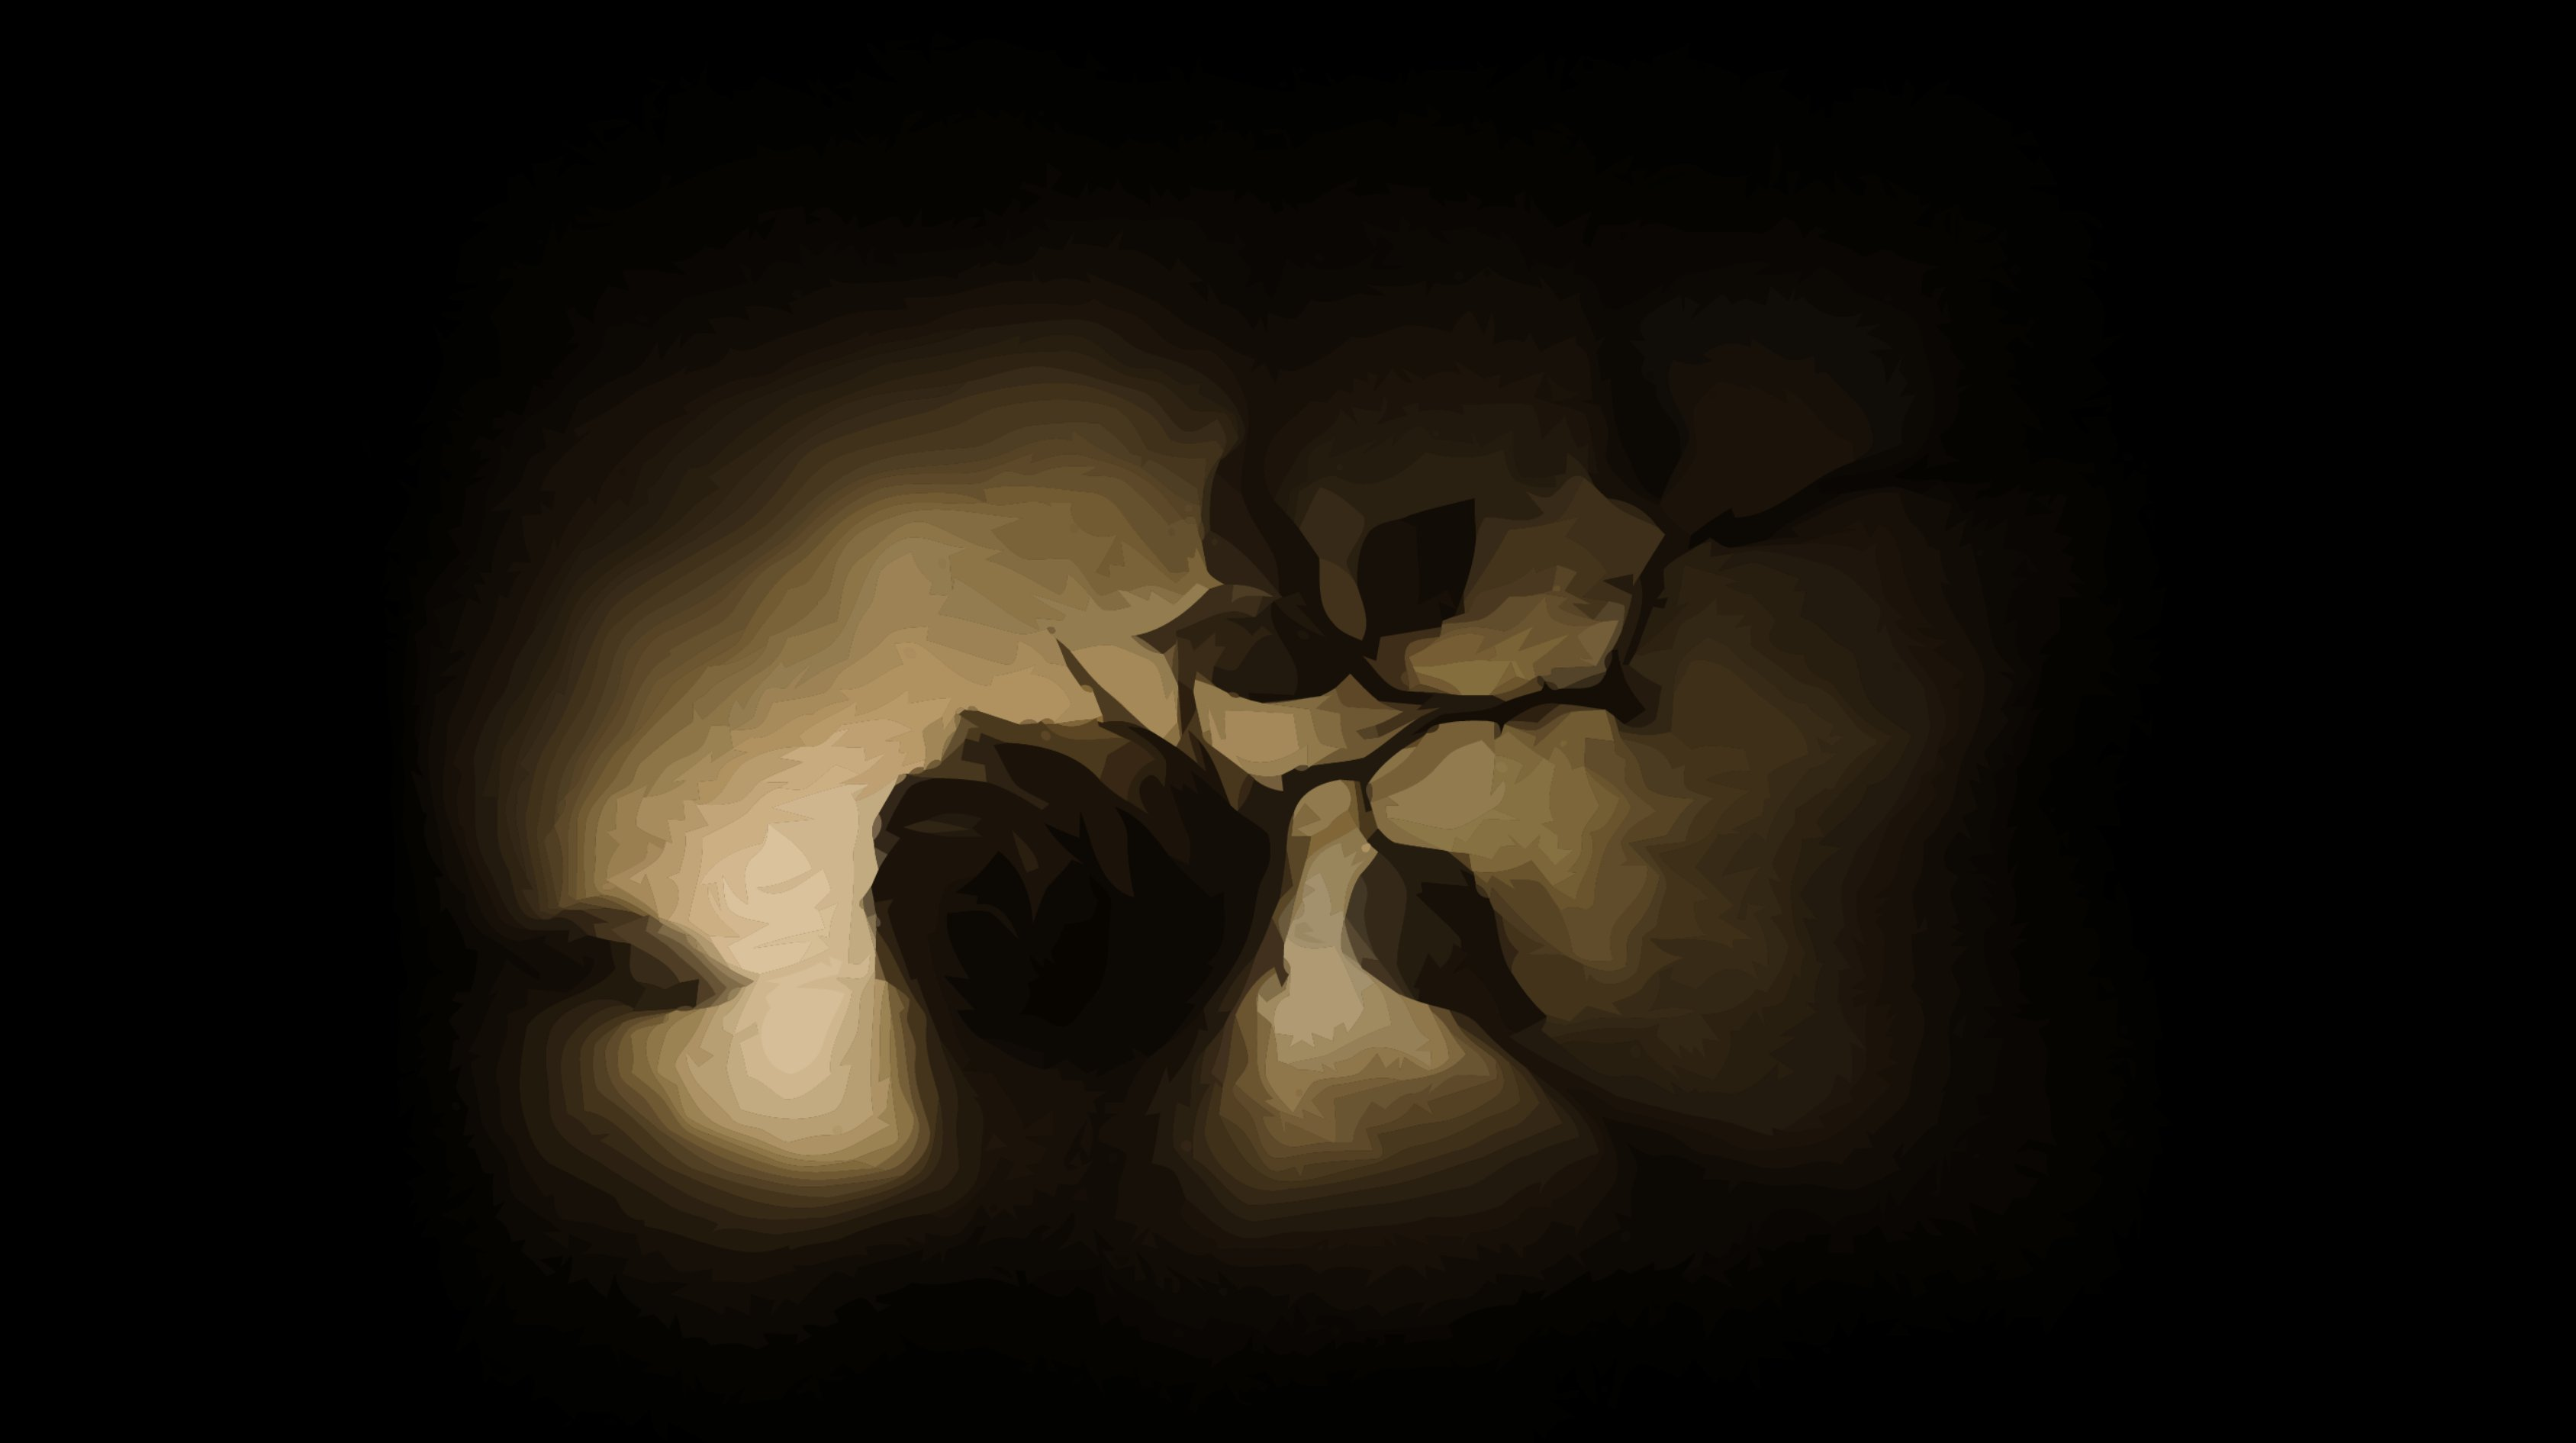 Rose From The Game Amnesia The Dark Descent Hd Wallpaper